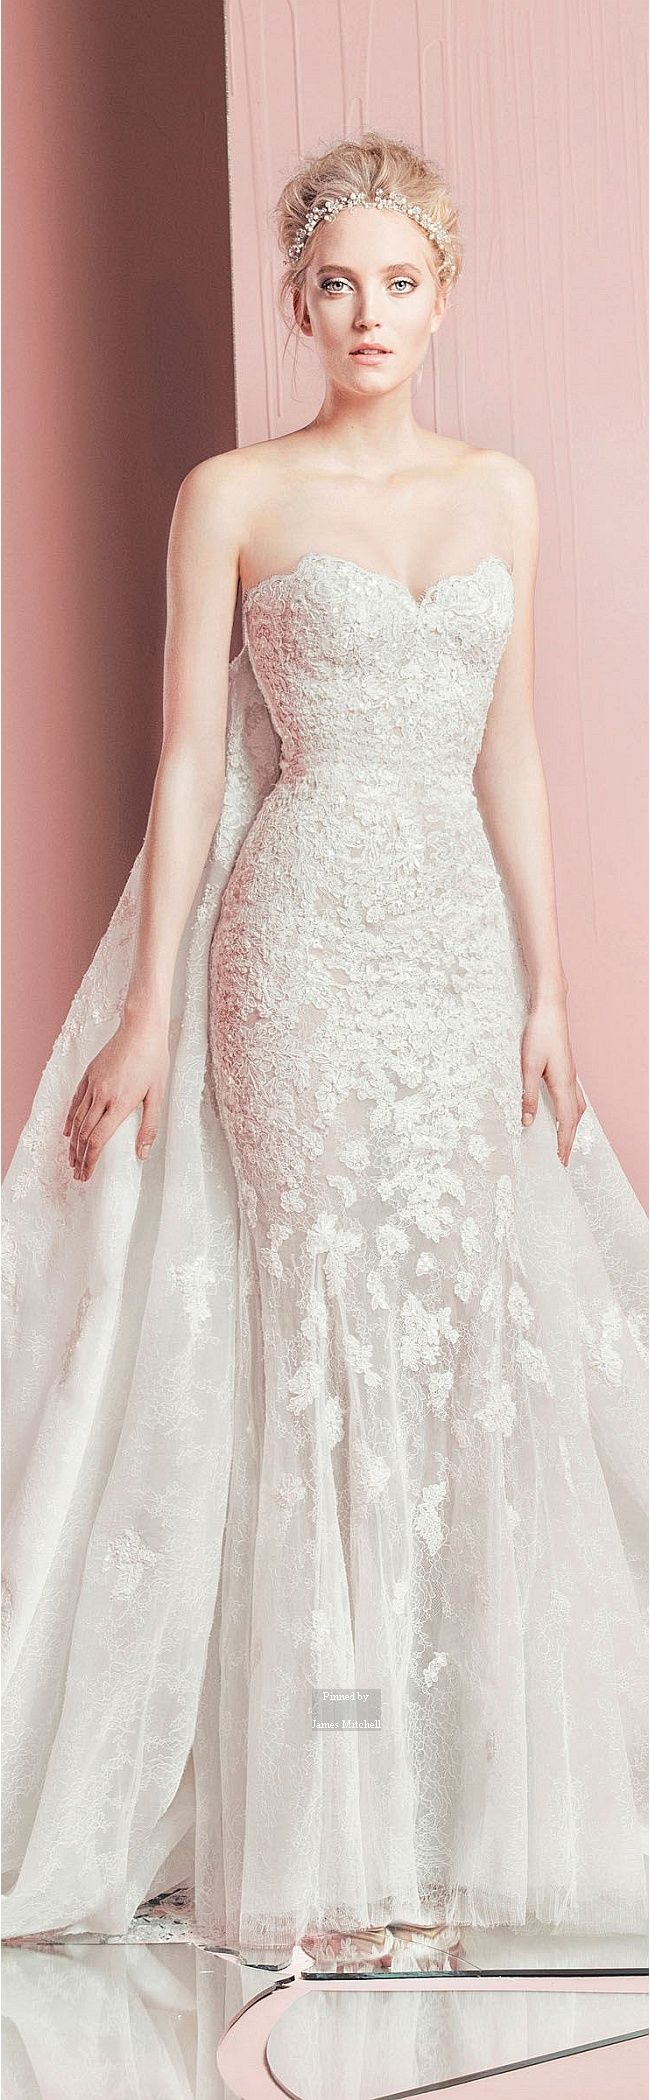 Zuhair Murad Bridal Spring-summer 2016 #coupon code nicesup123 gets 25% off at  Provestra.com Skinception.com